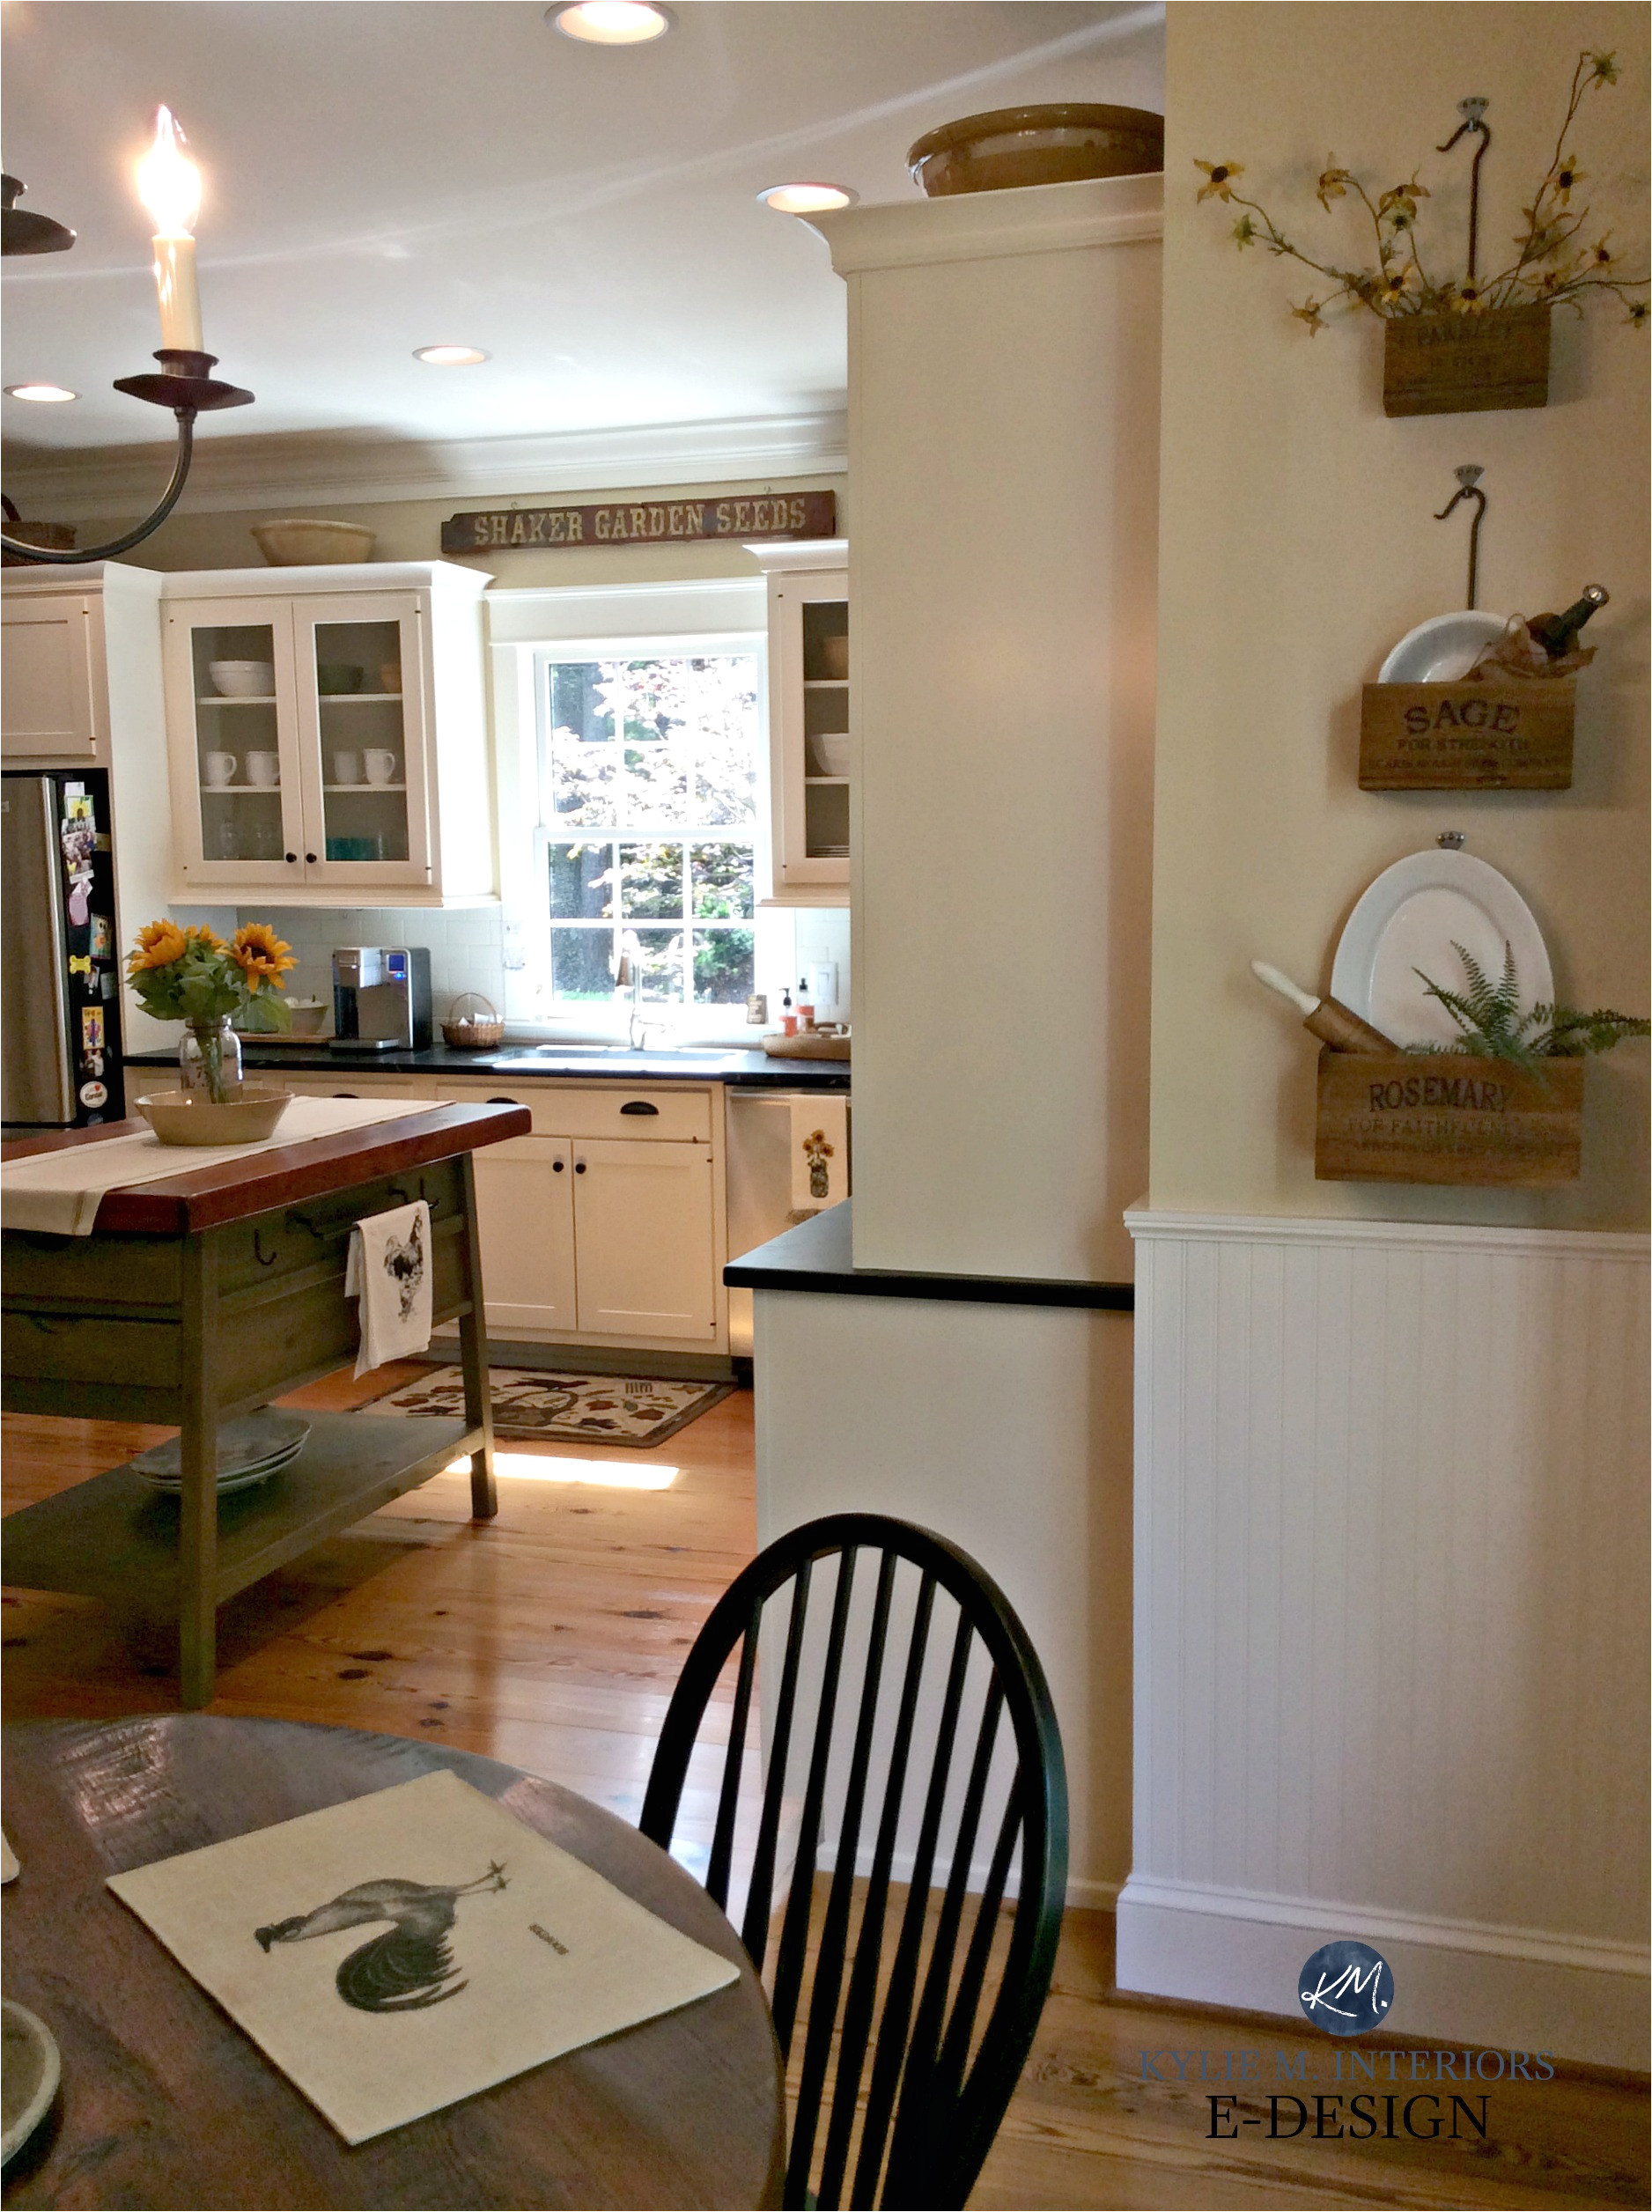 benjamin moore powell buff in country farmhouse kitchen kylie m e design jpg